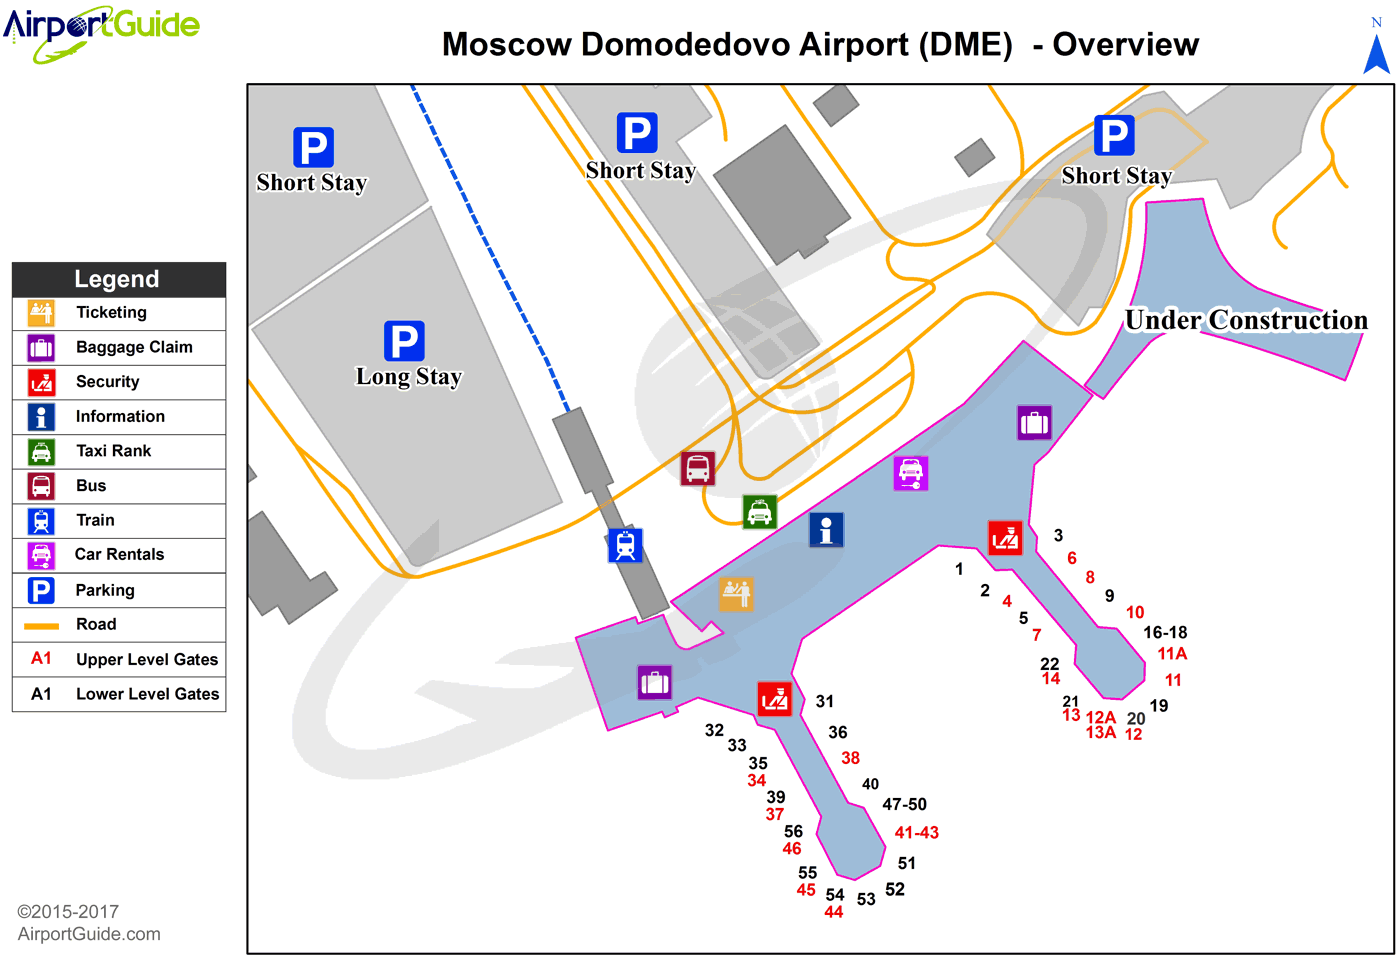 Moscow - Domodedovo International (DME) Airport Terminal Map - Overview